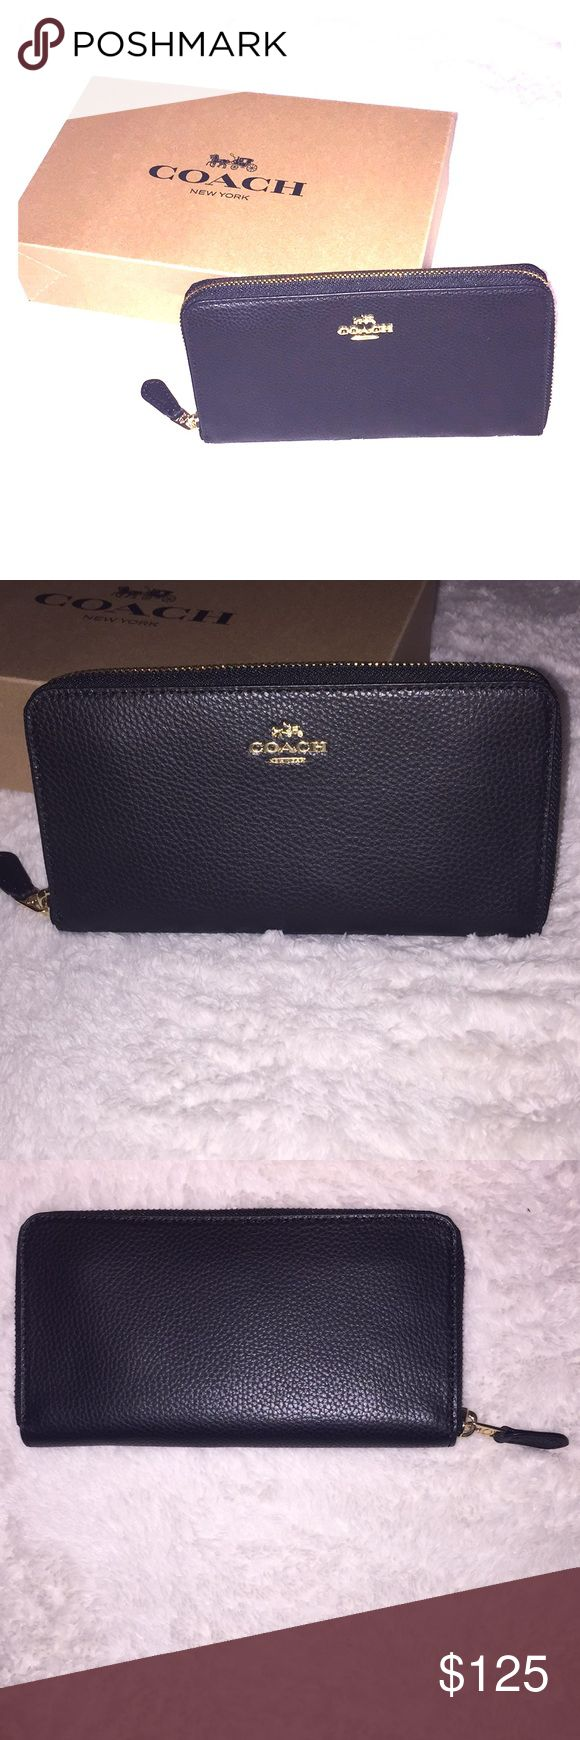 """✨NWT Coach Black Pebble Accordion Zip Wallet✨ NWT Coach Black Accordion Zip Wallet with Gift Box!   Extra soft, polished pebble leather. Made in Vietnam. Imitation gold hardware accents.  12 credit card slots.  Full-length bill compartments. Zip coin pocket.  Zip-around closure. Fits all phone sizes up to an iPhone X & Samsung S7 Edge. 7 1/2""""(L) x 4""""(H) x 3/4""""(W) Coach Bags Wallets"""